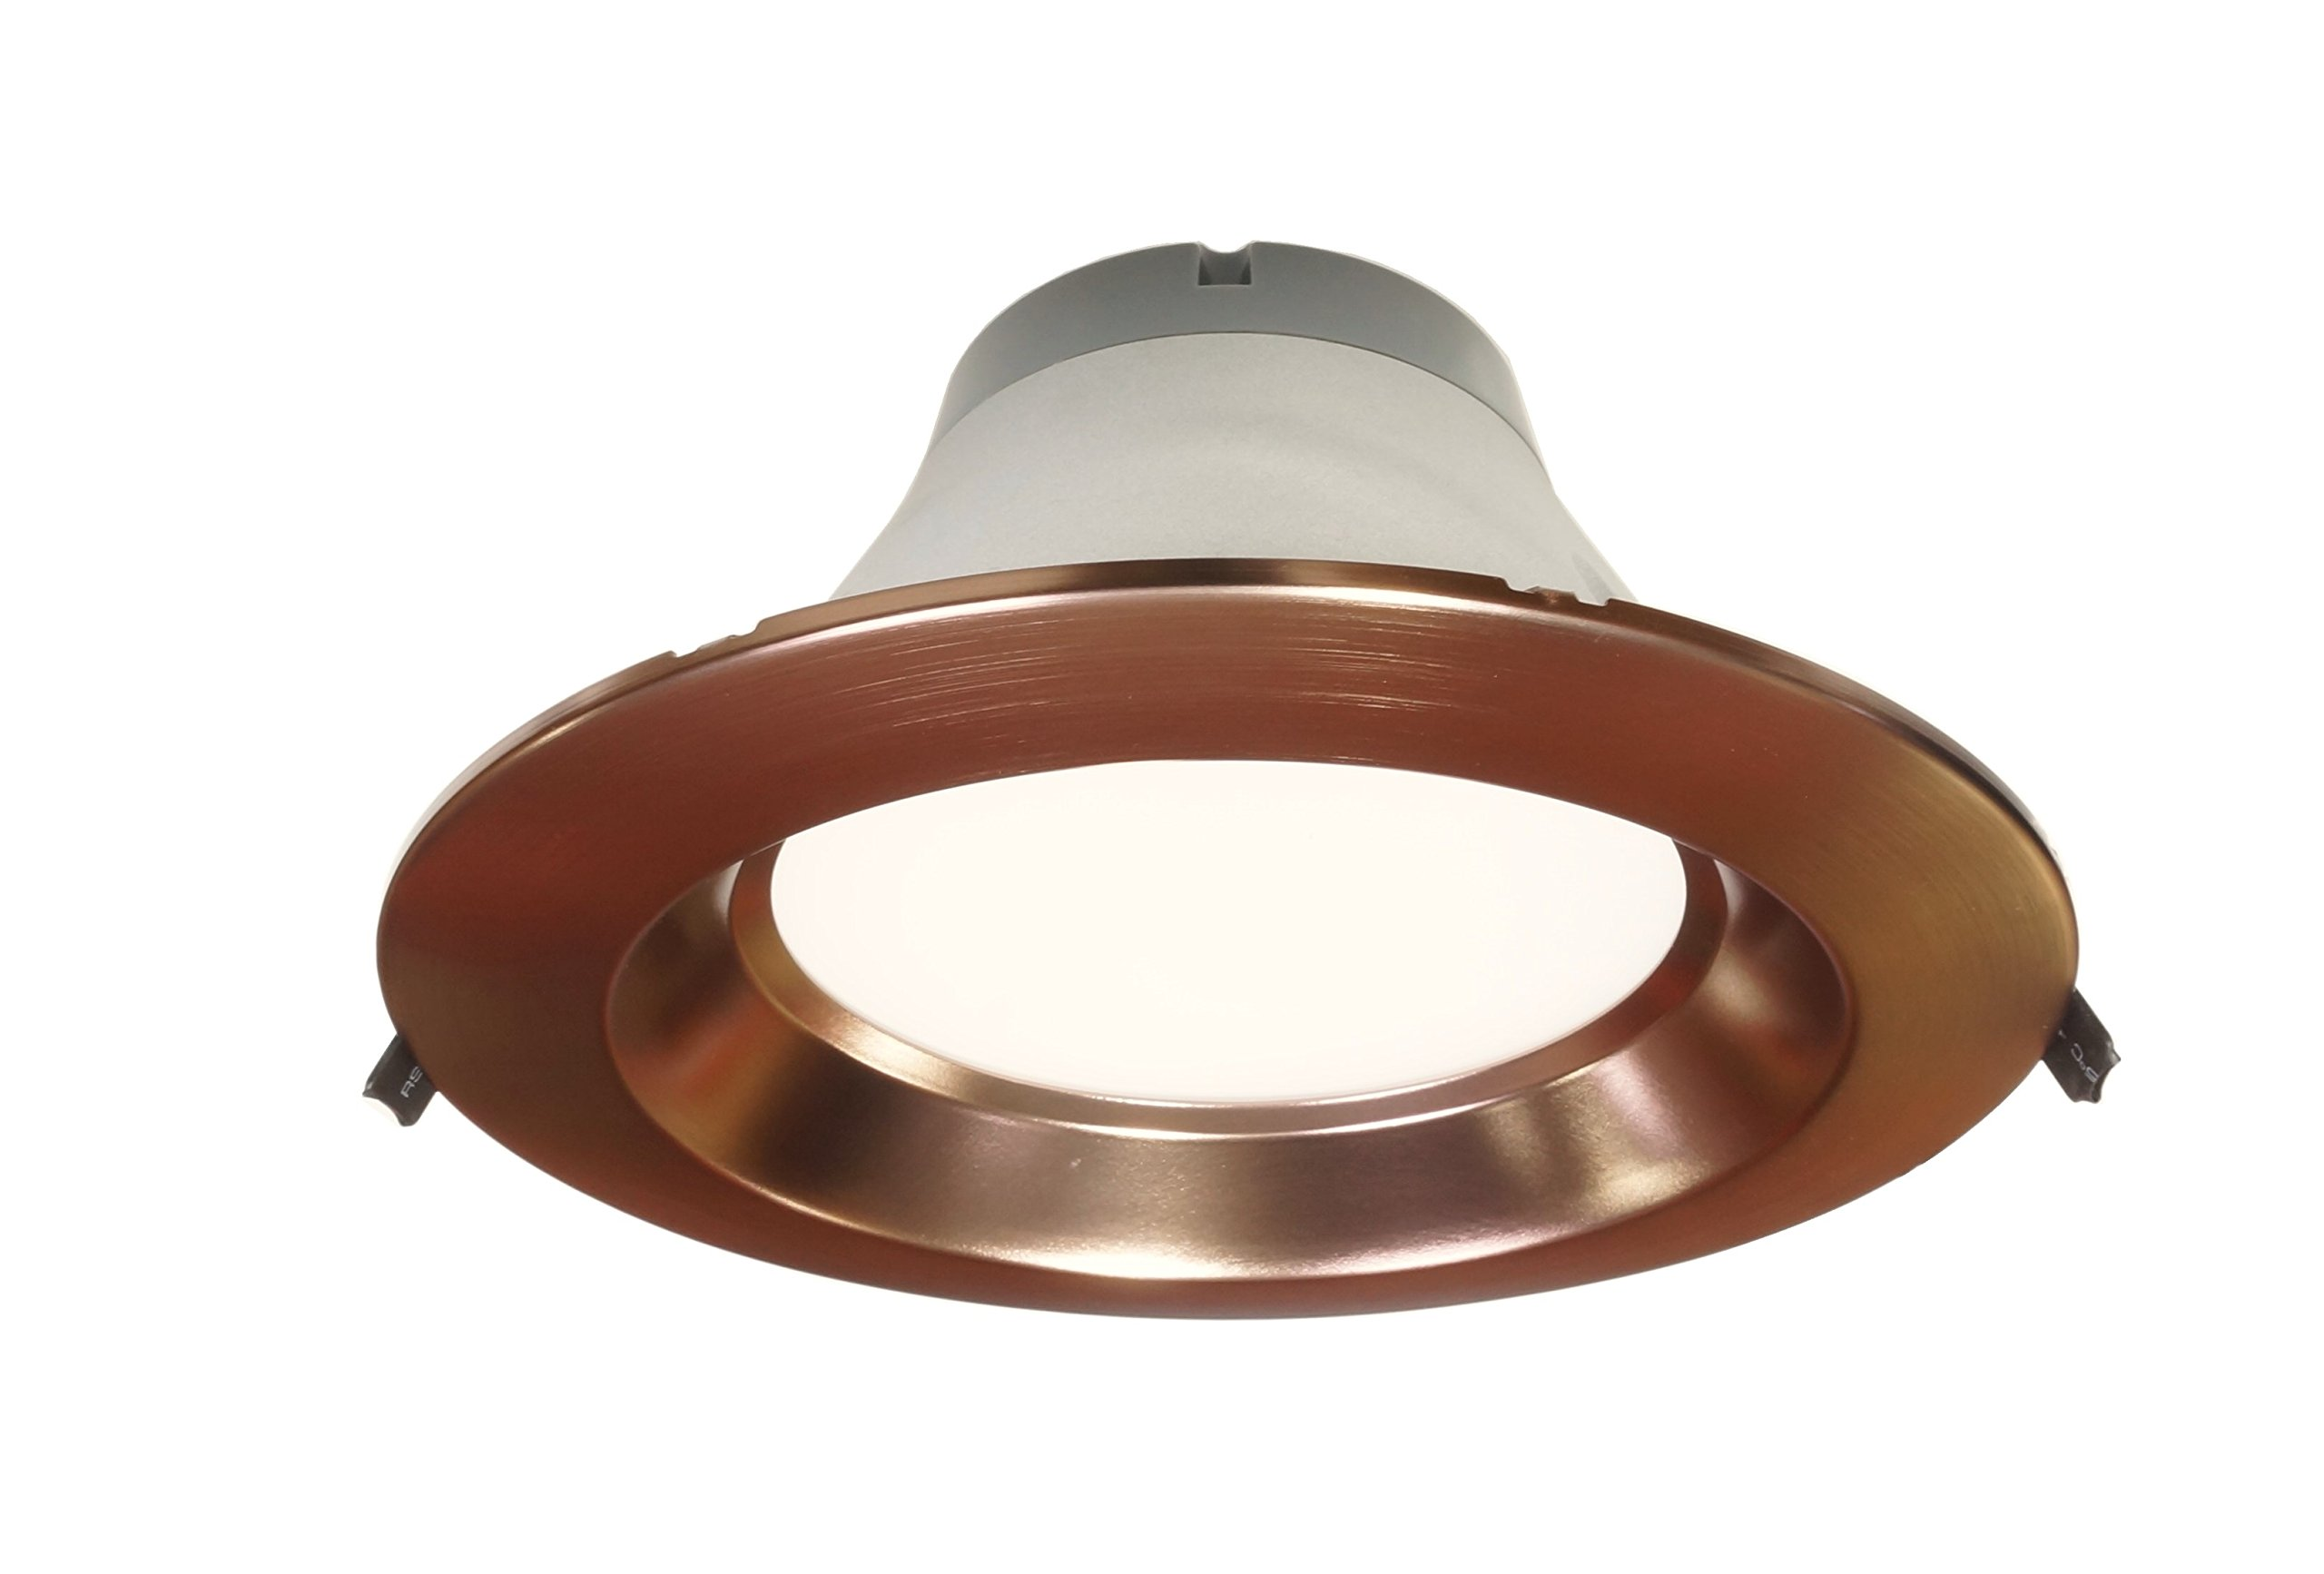 NICOR Lighting Dimmable 4000K Commercial LED Recessed Downlight Retrofit Kit, Oil-Rubbed Bronze (CLR8-10-UNV-40K-OB)